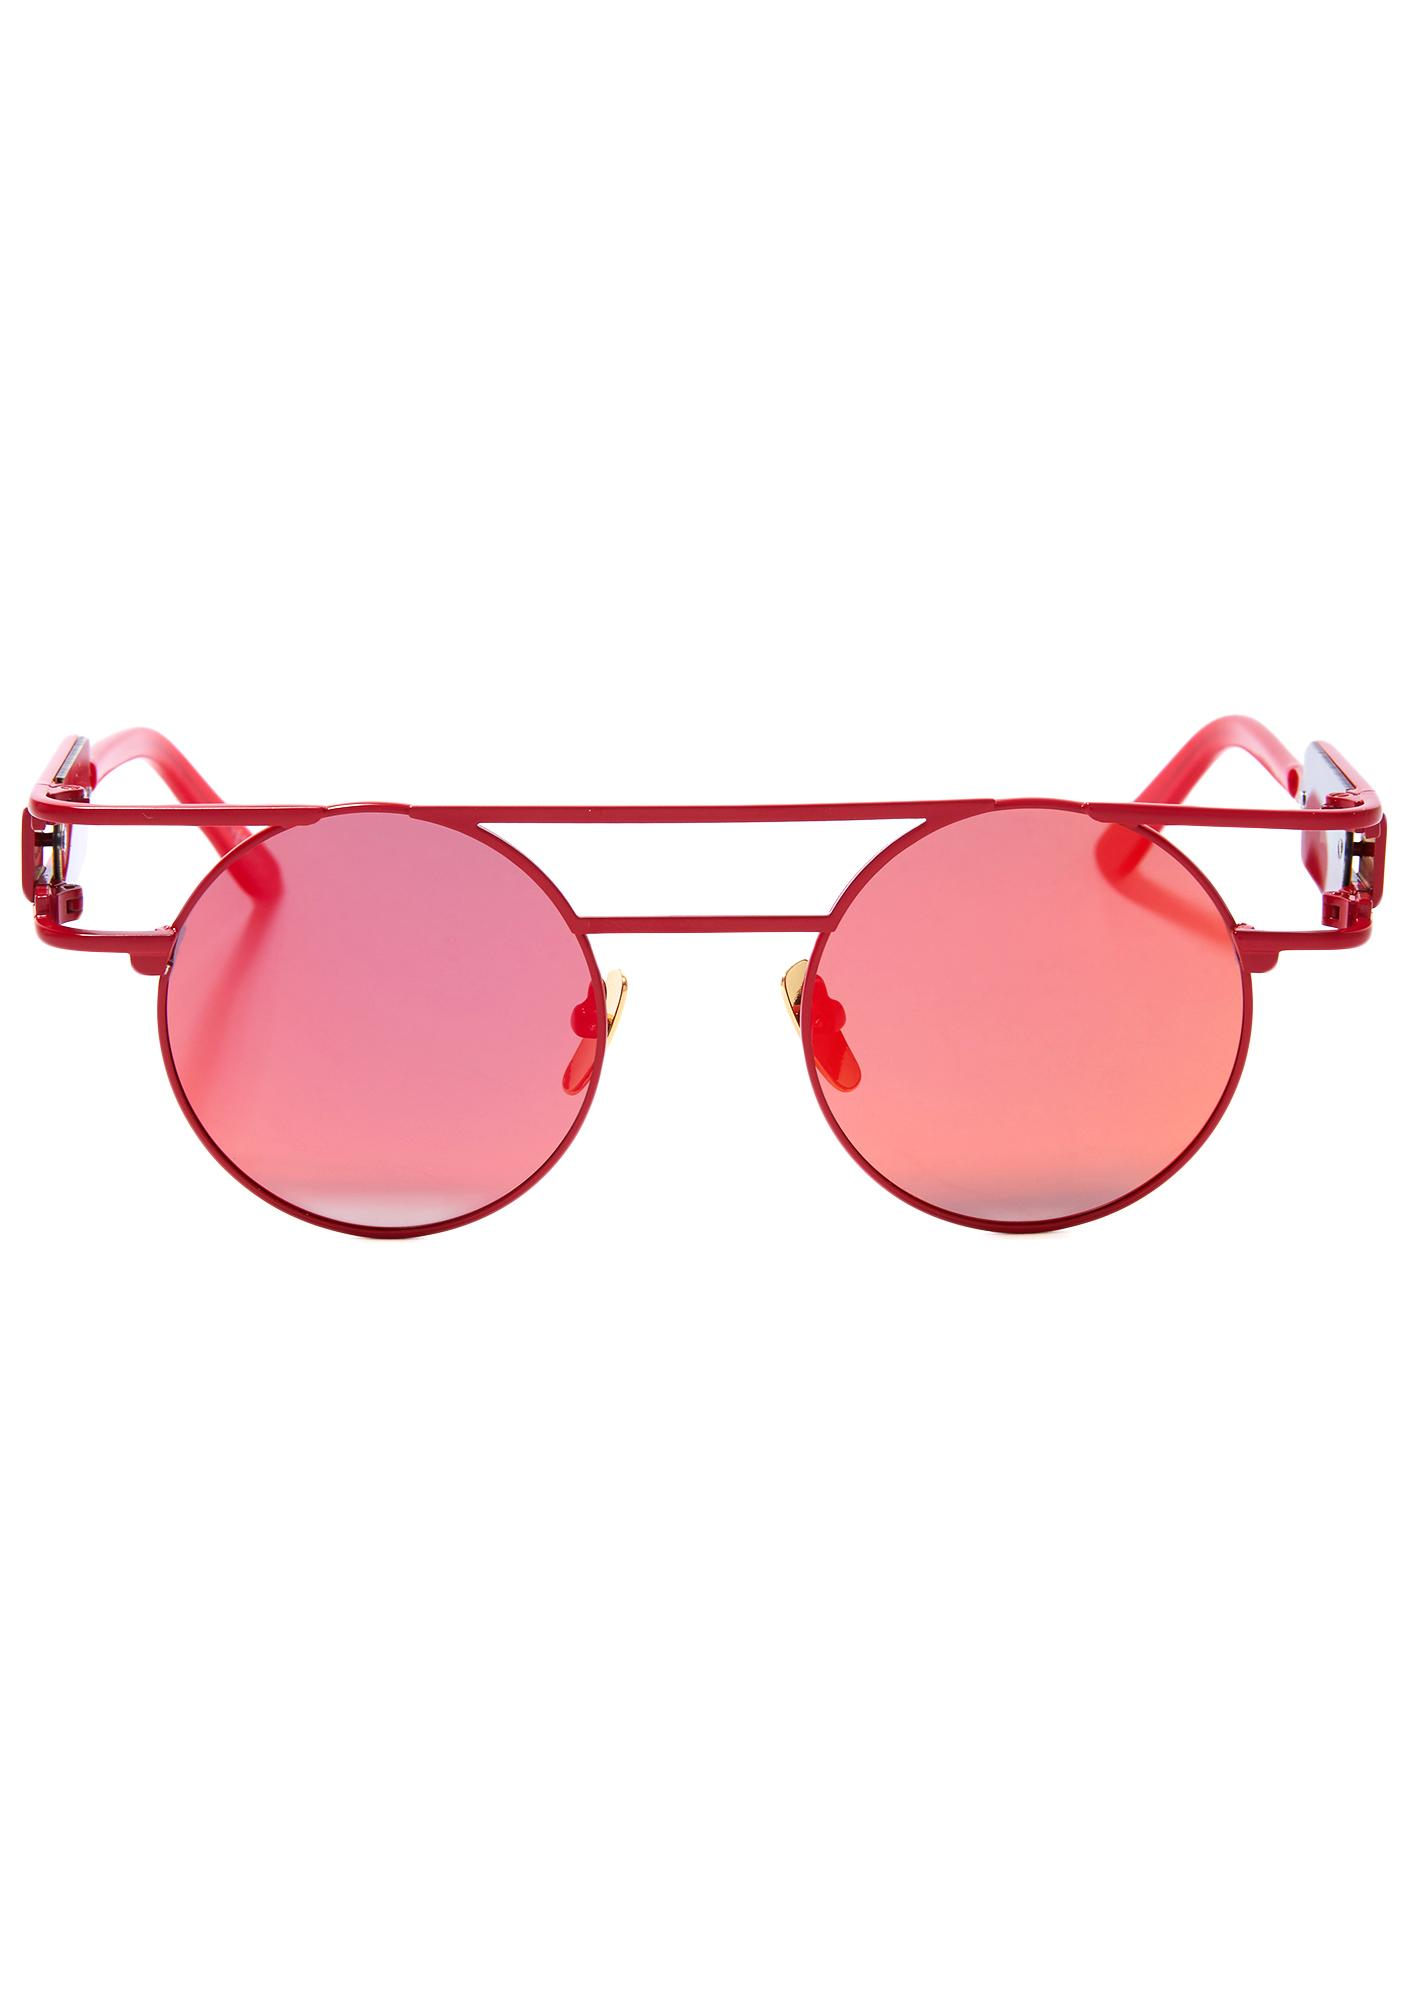 ESQAPE Ruby Speqz Sunglasses